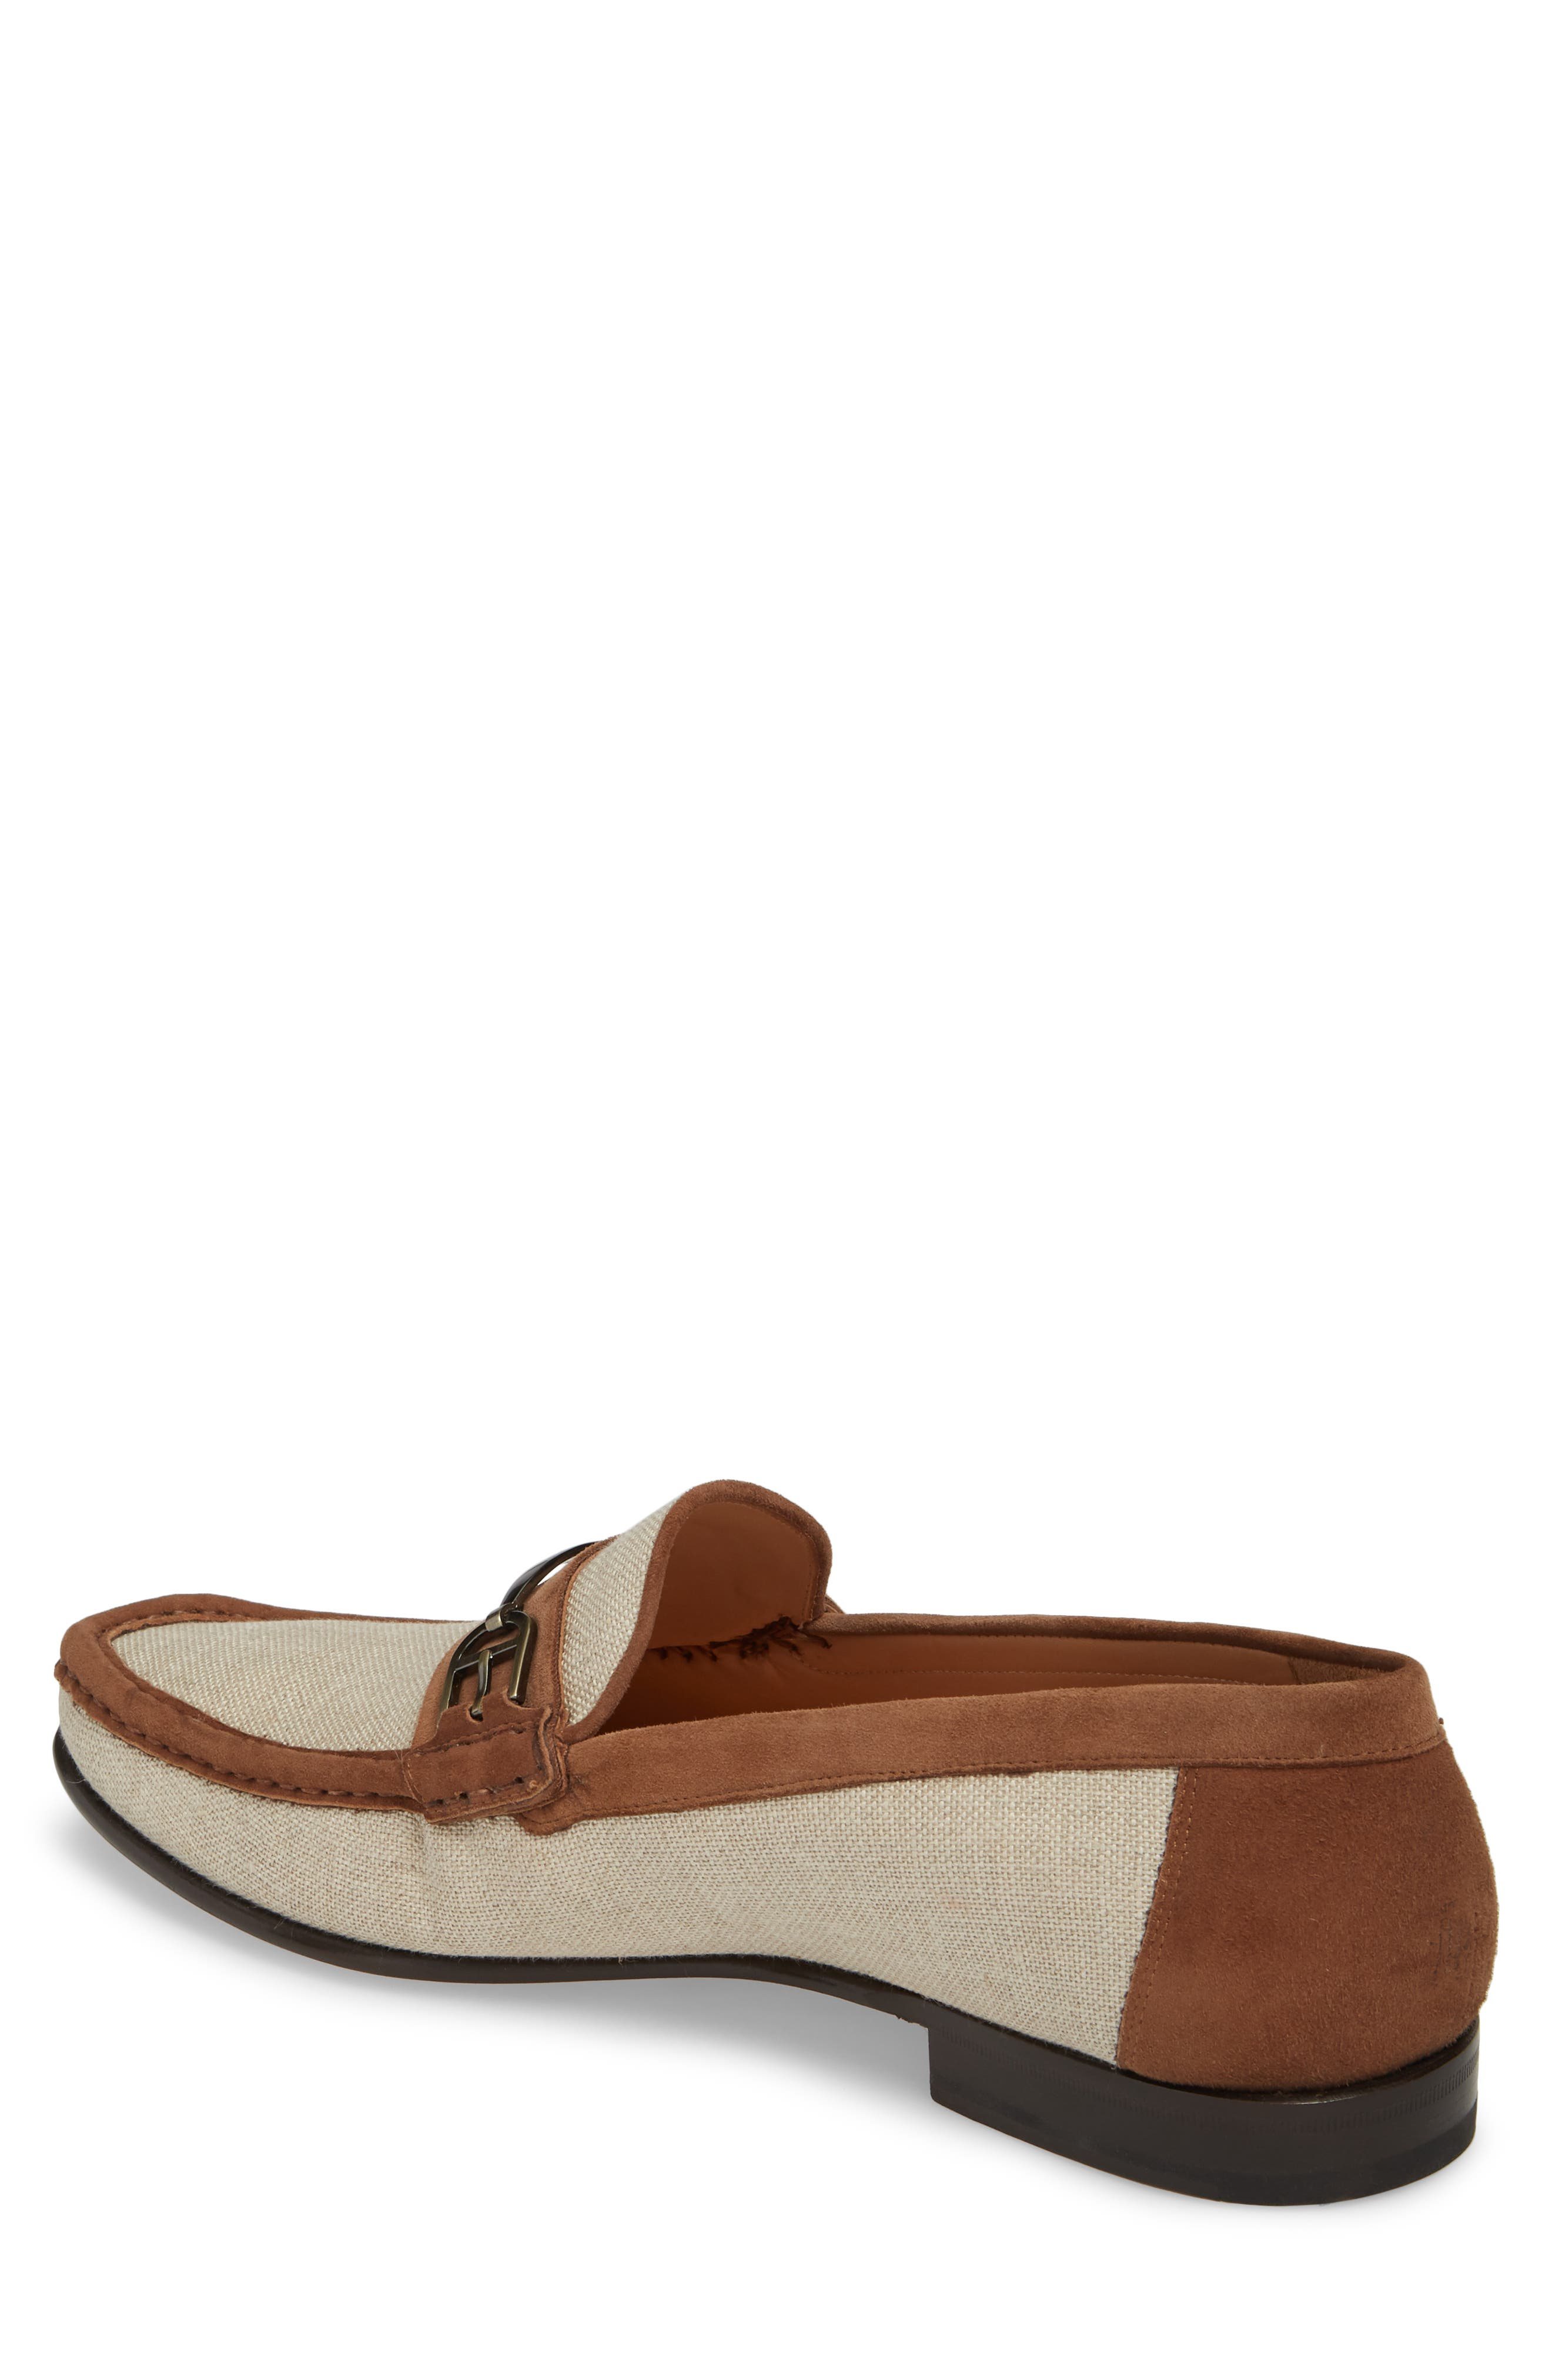 Jason Two-Tone Bit Loafer,                             Alternate thumbnail 2, color,                             BONE/ COGNAC LINEN/ SUEDE